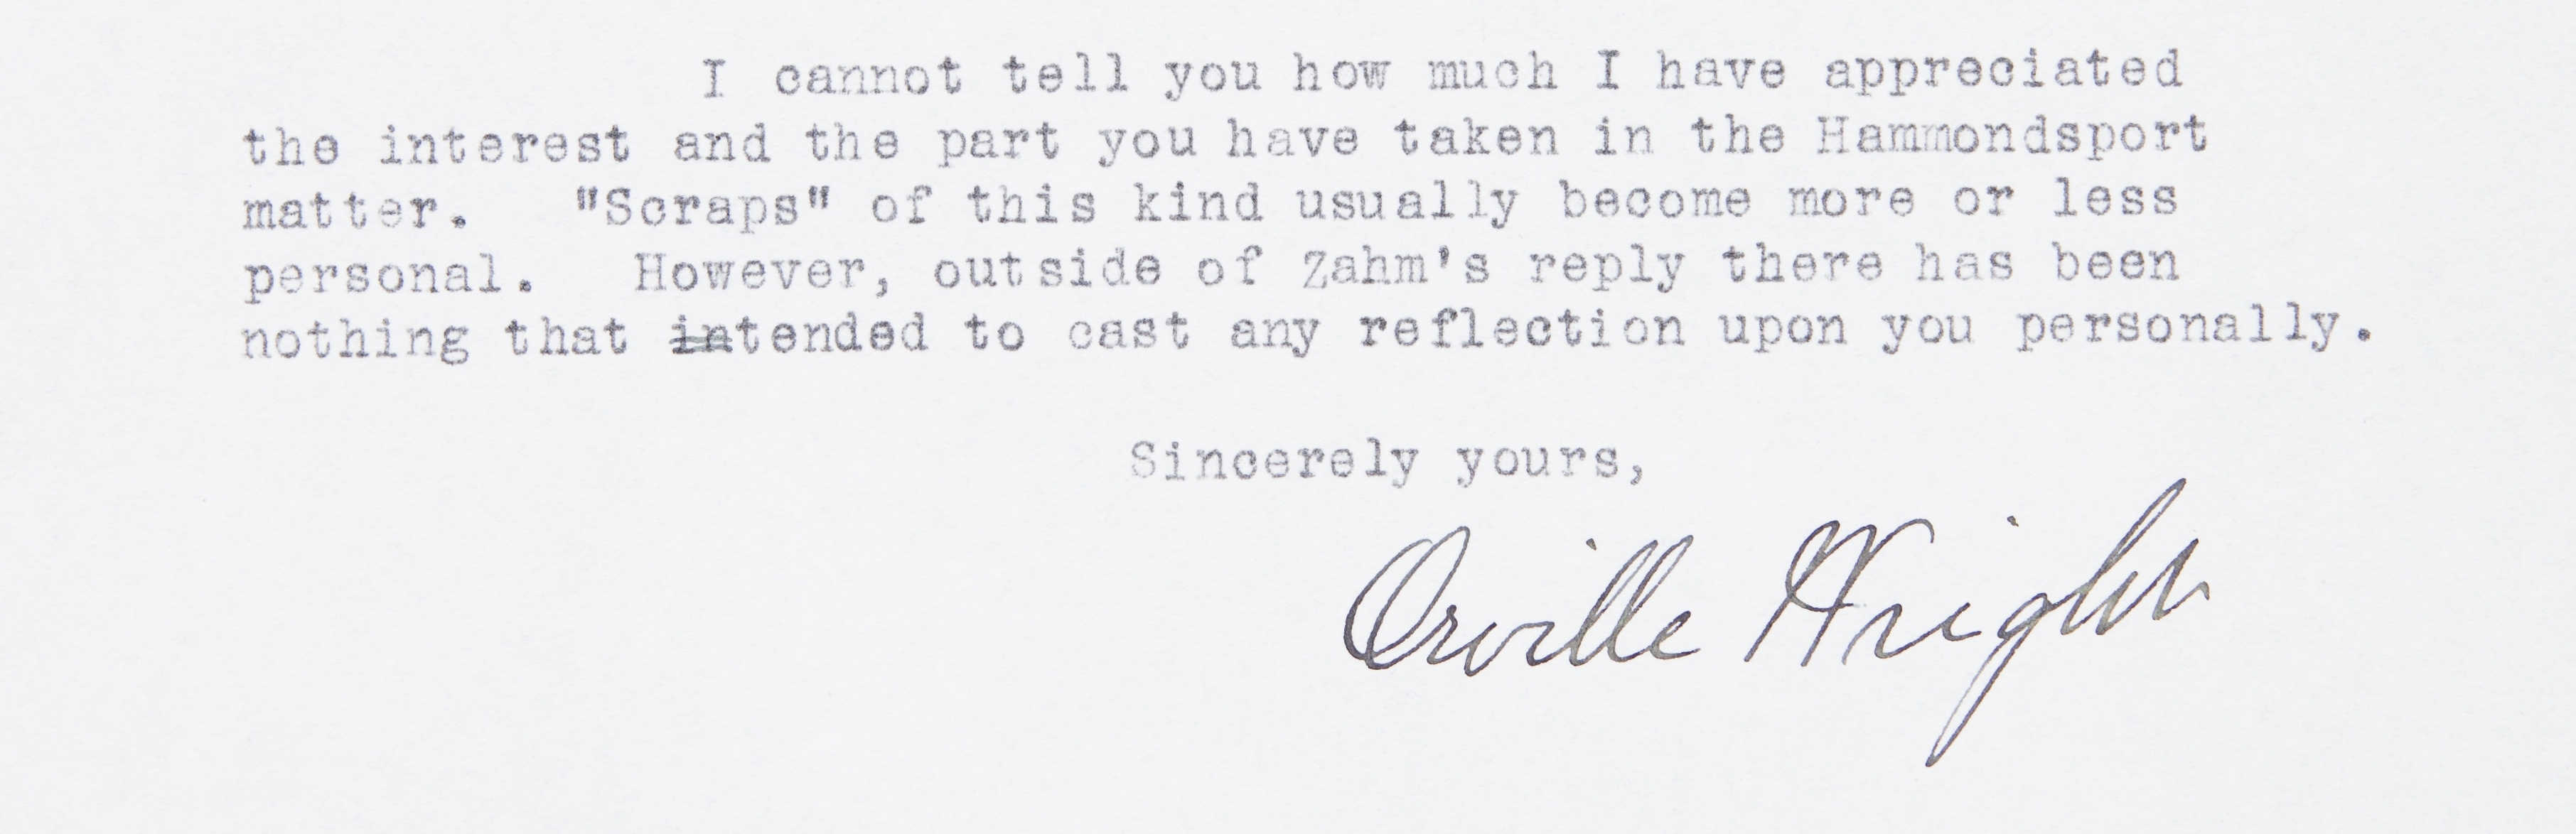 Letter from Orville Wright to Griffiths Brewer, 1922